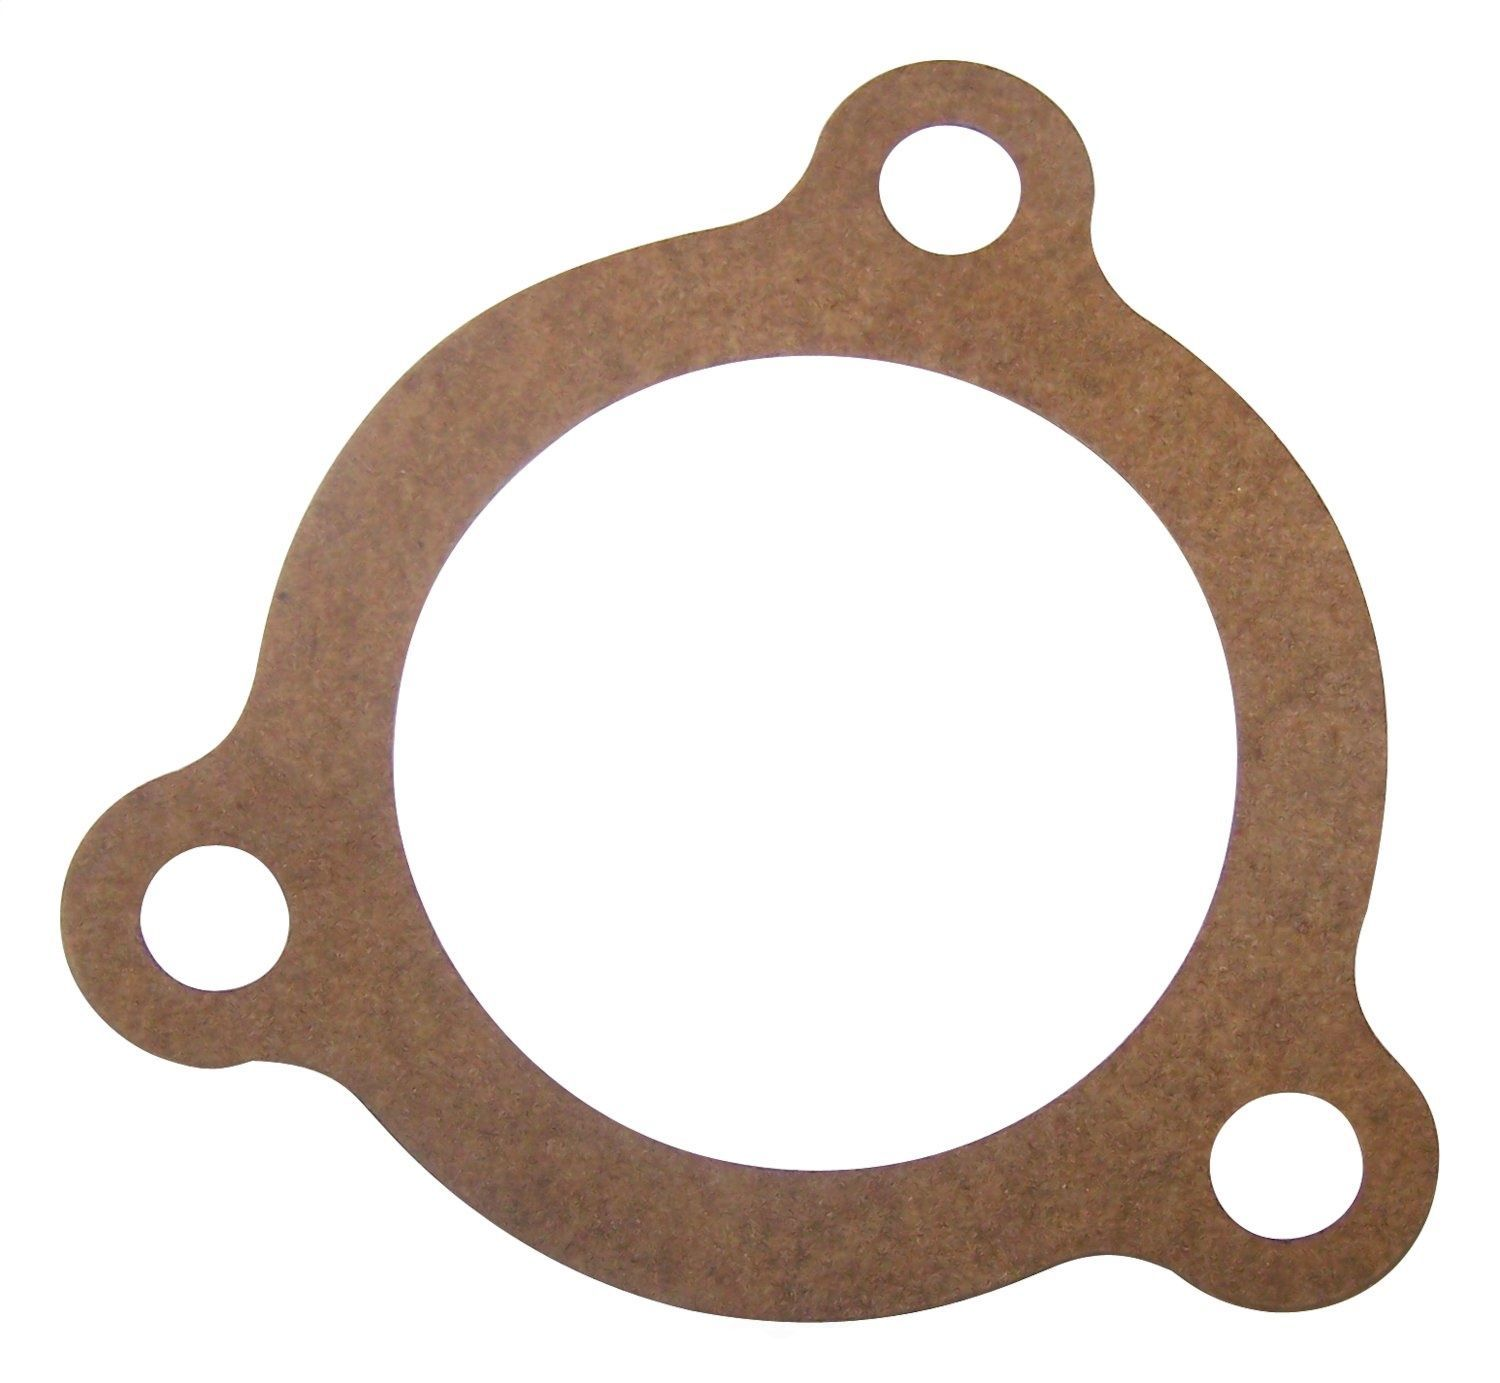 CROWN AUTOMOTIVE SALES CO. - Water Pump Gasket - CAJ 4864575